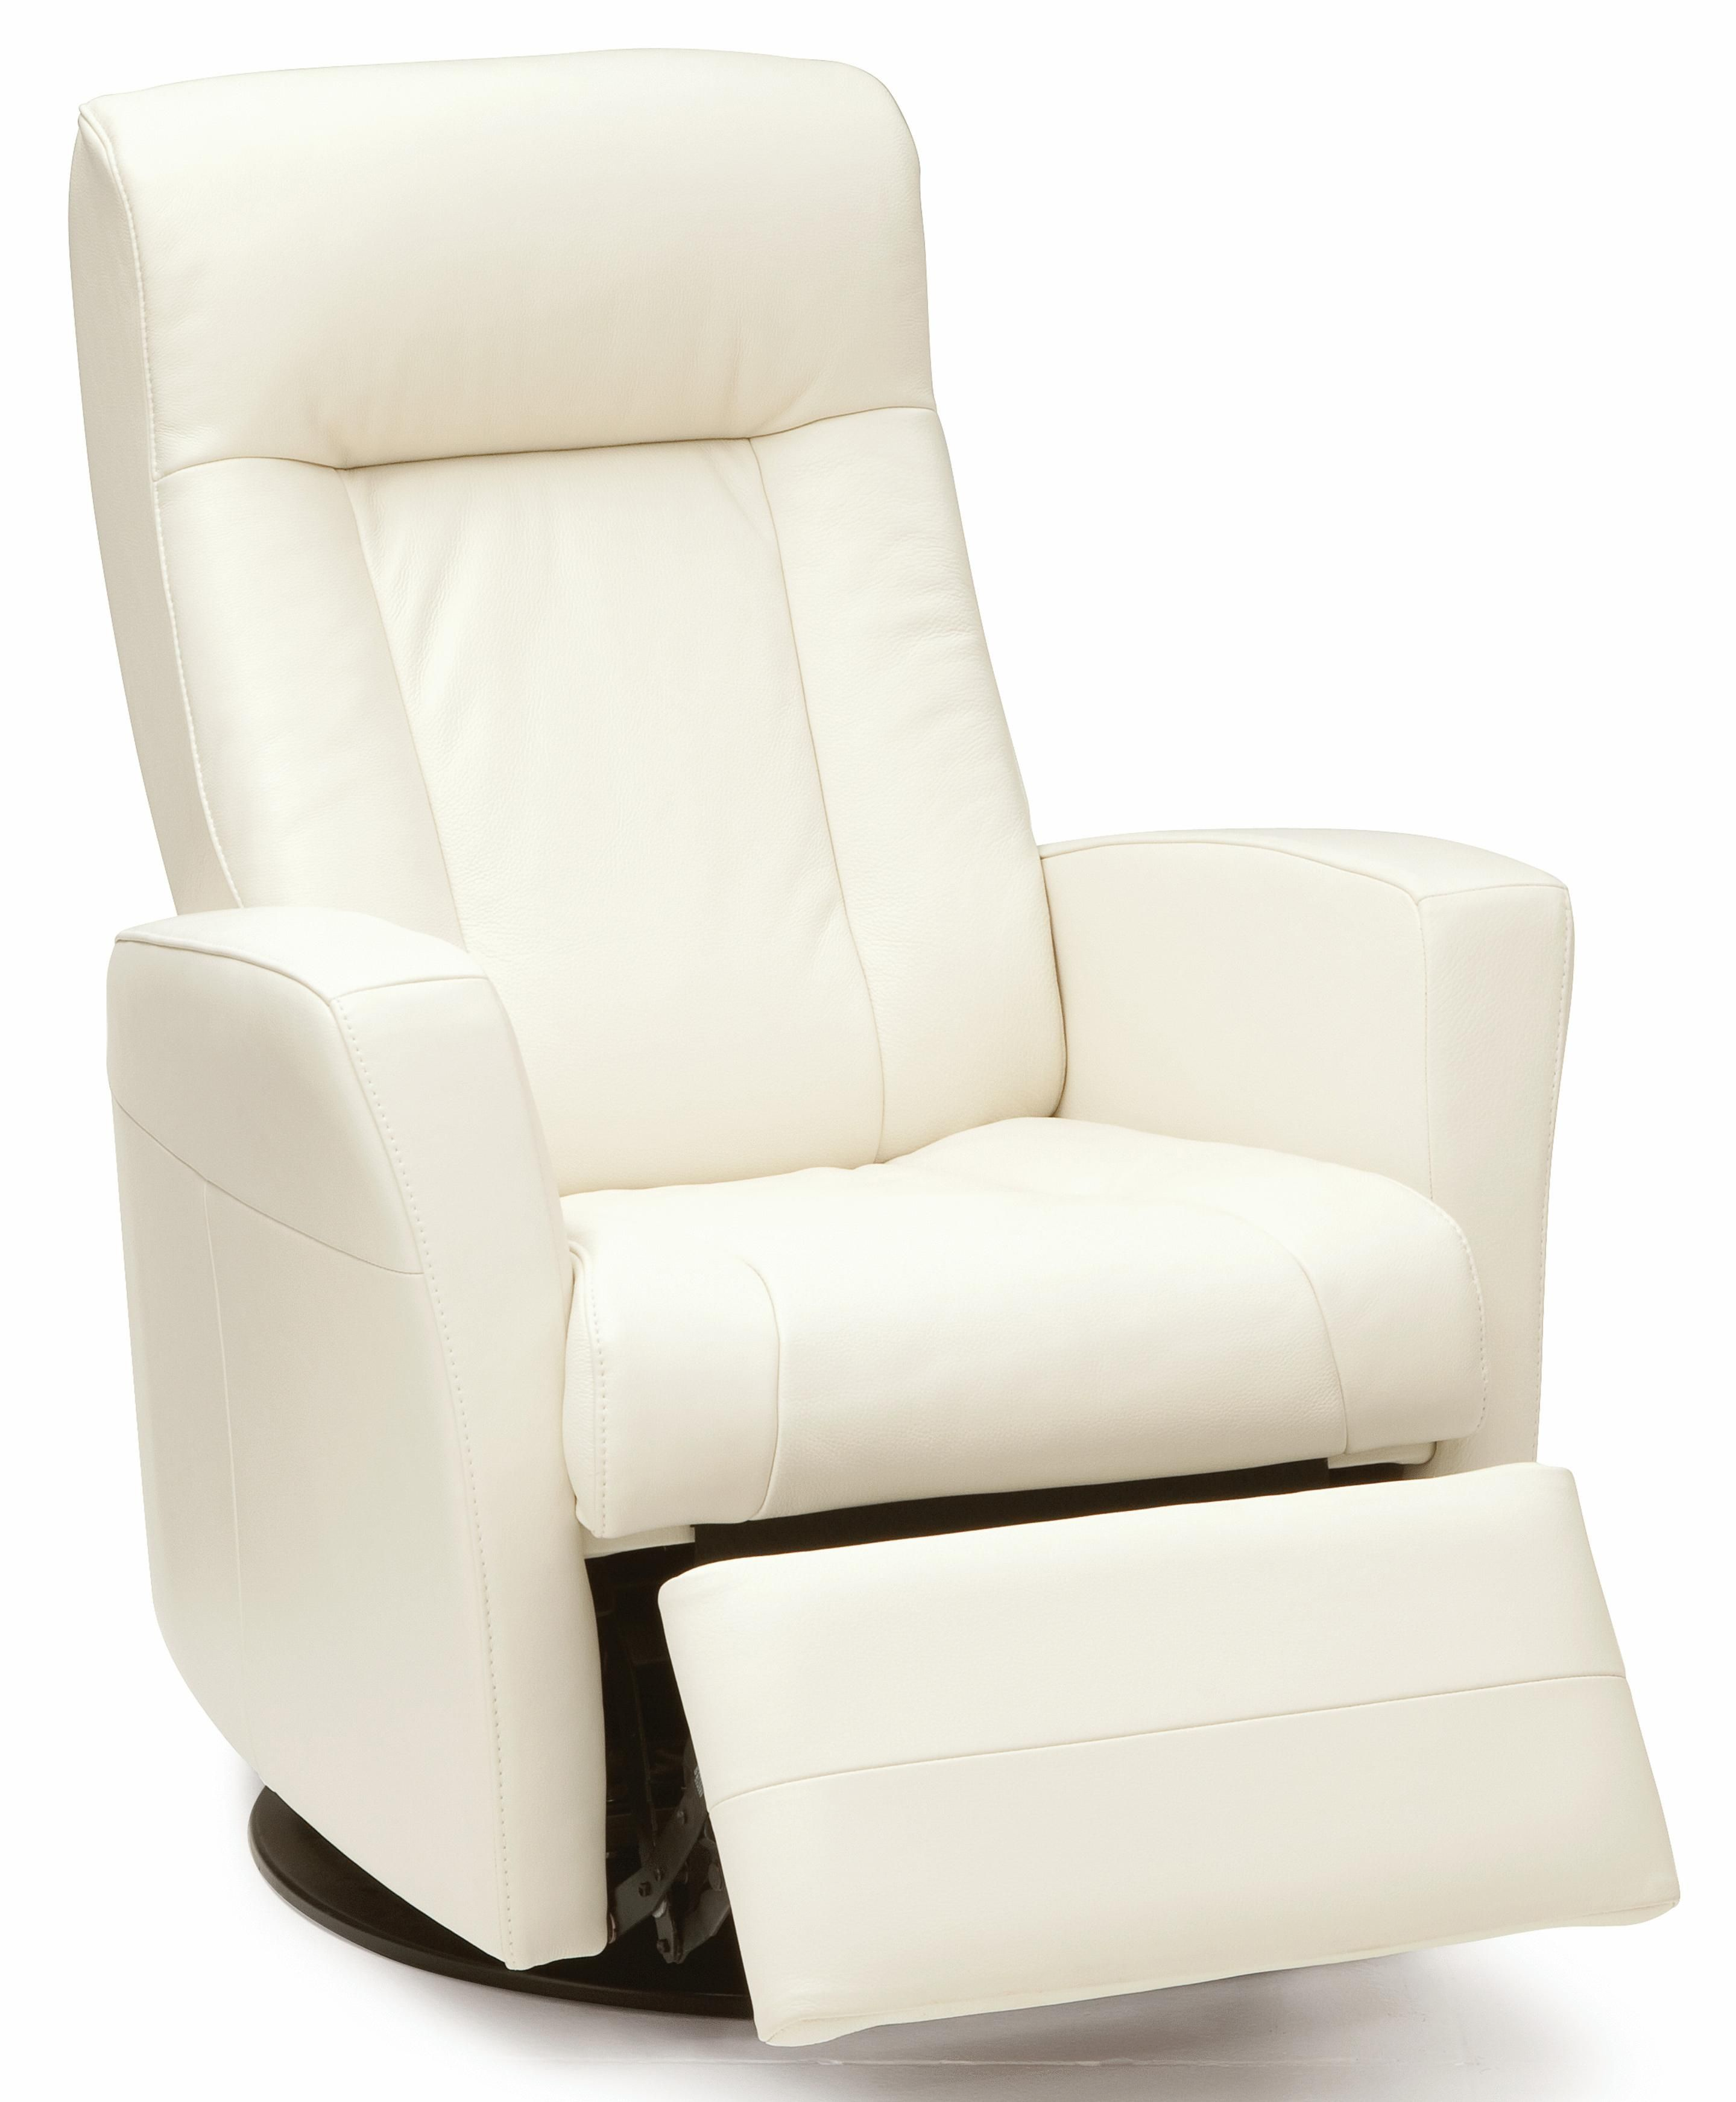 29 Wide No Price Given Banff Power Swivel Glider Recliner By